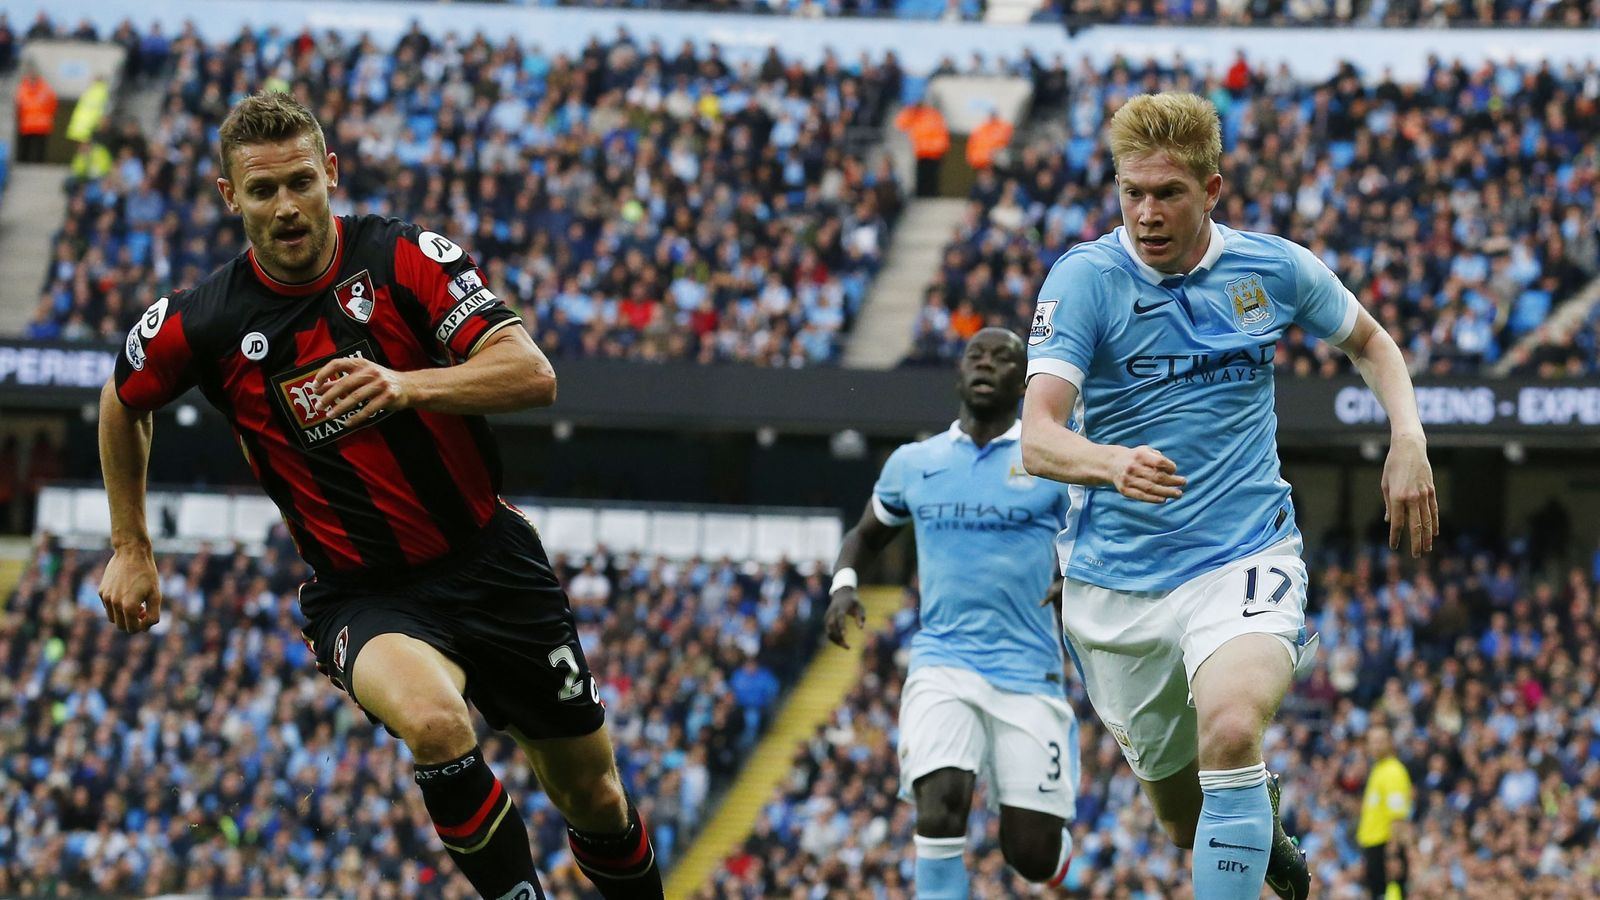 bournemouth vs man city - HD 1600×900